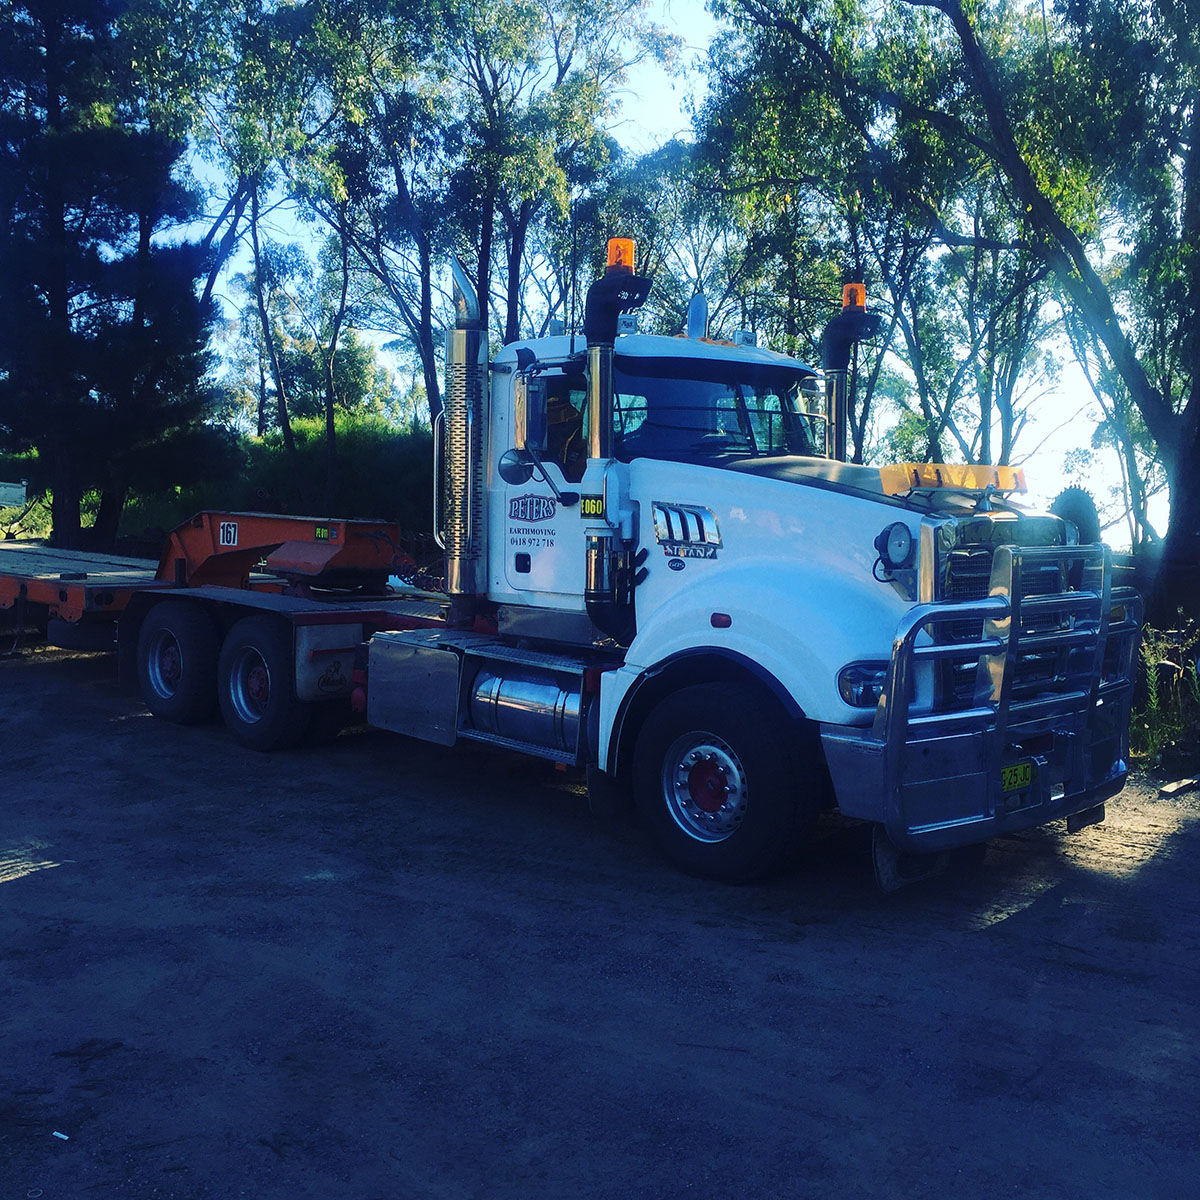 Peters Earthmoving road truck with float